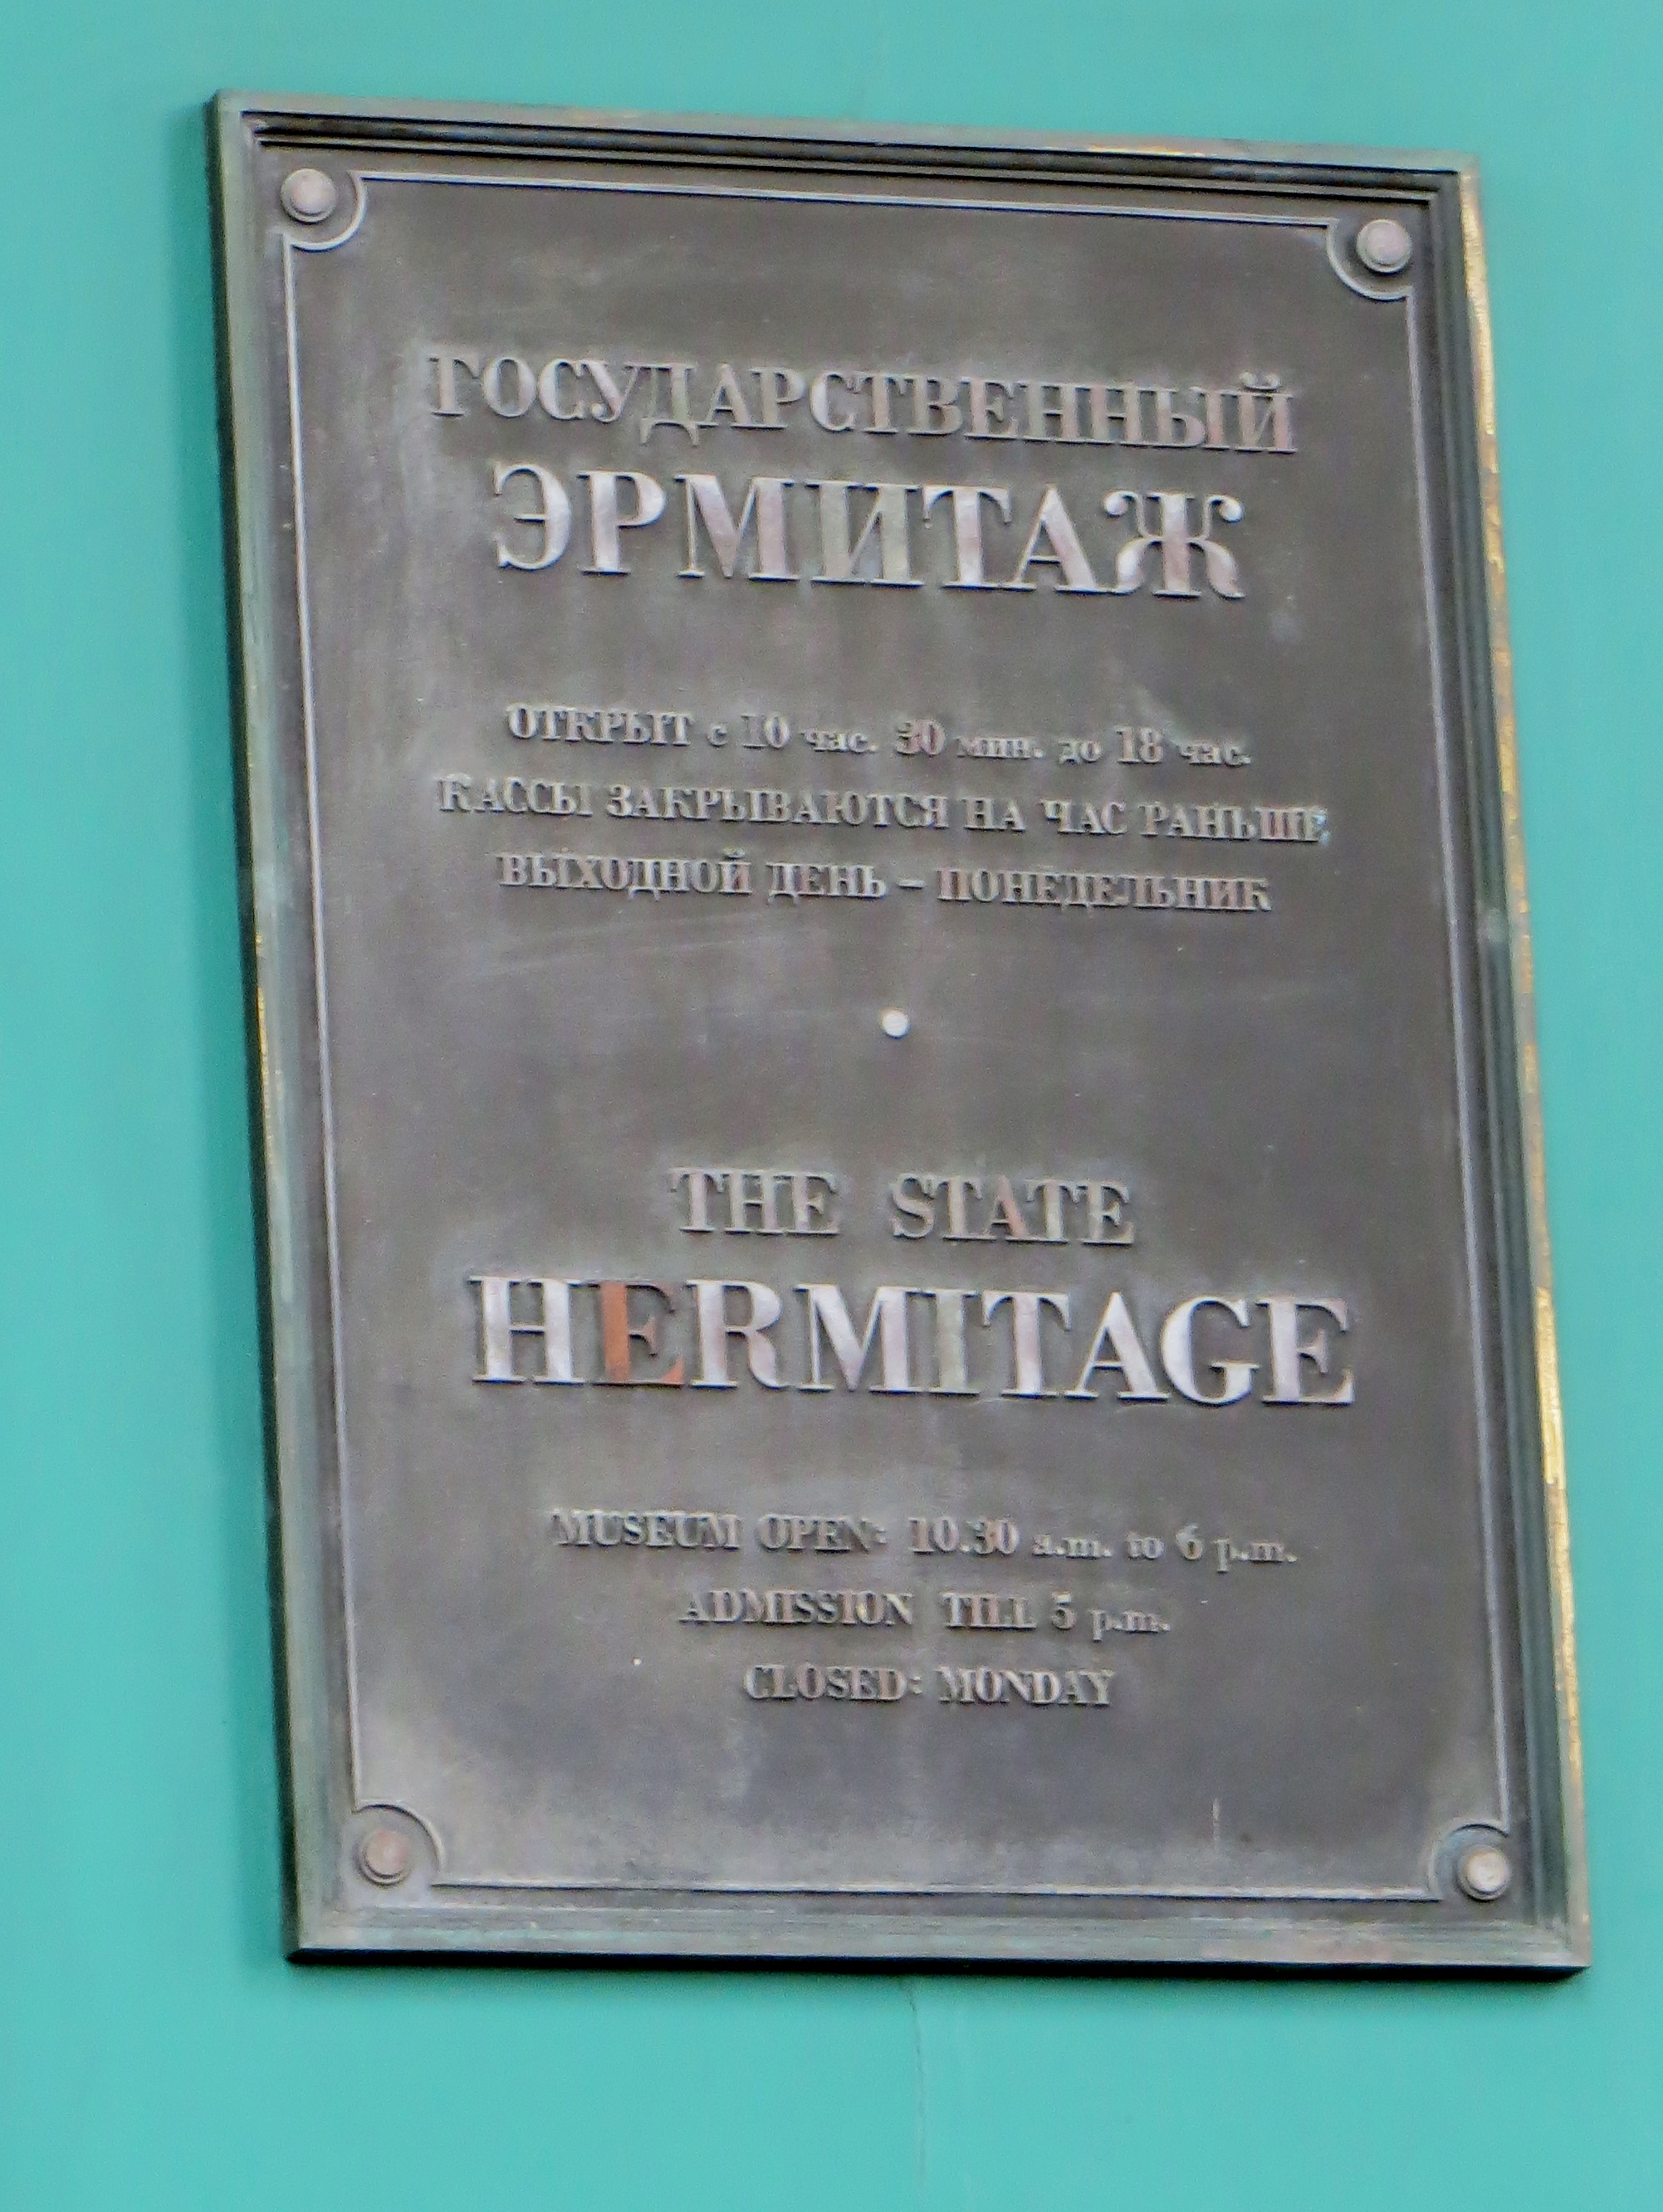 St Pete 7.11 Hermitage Russia